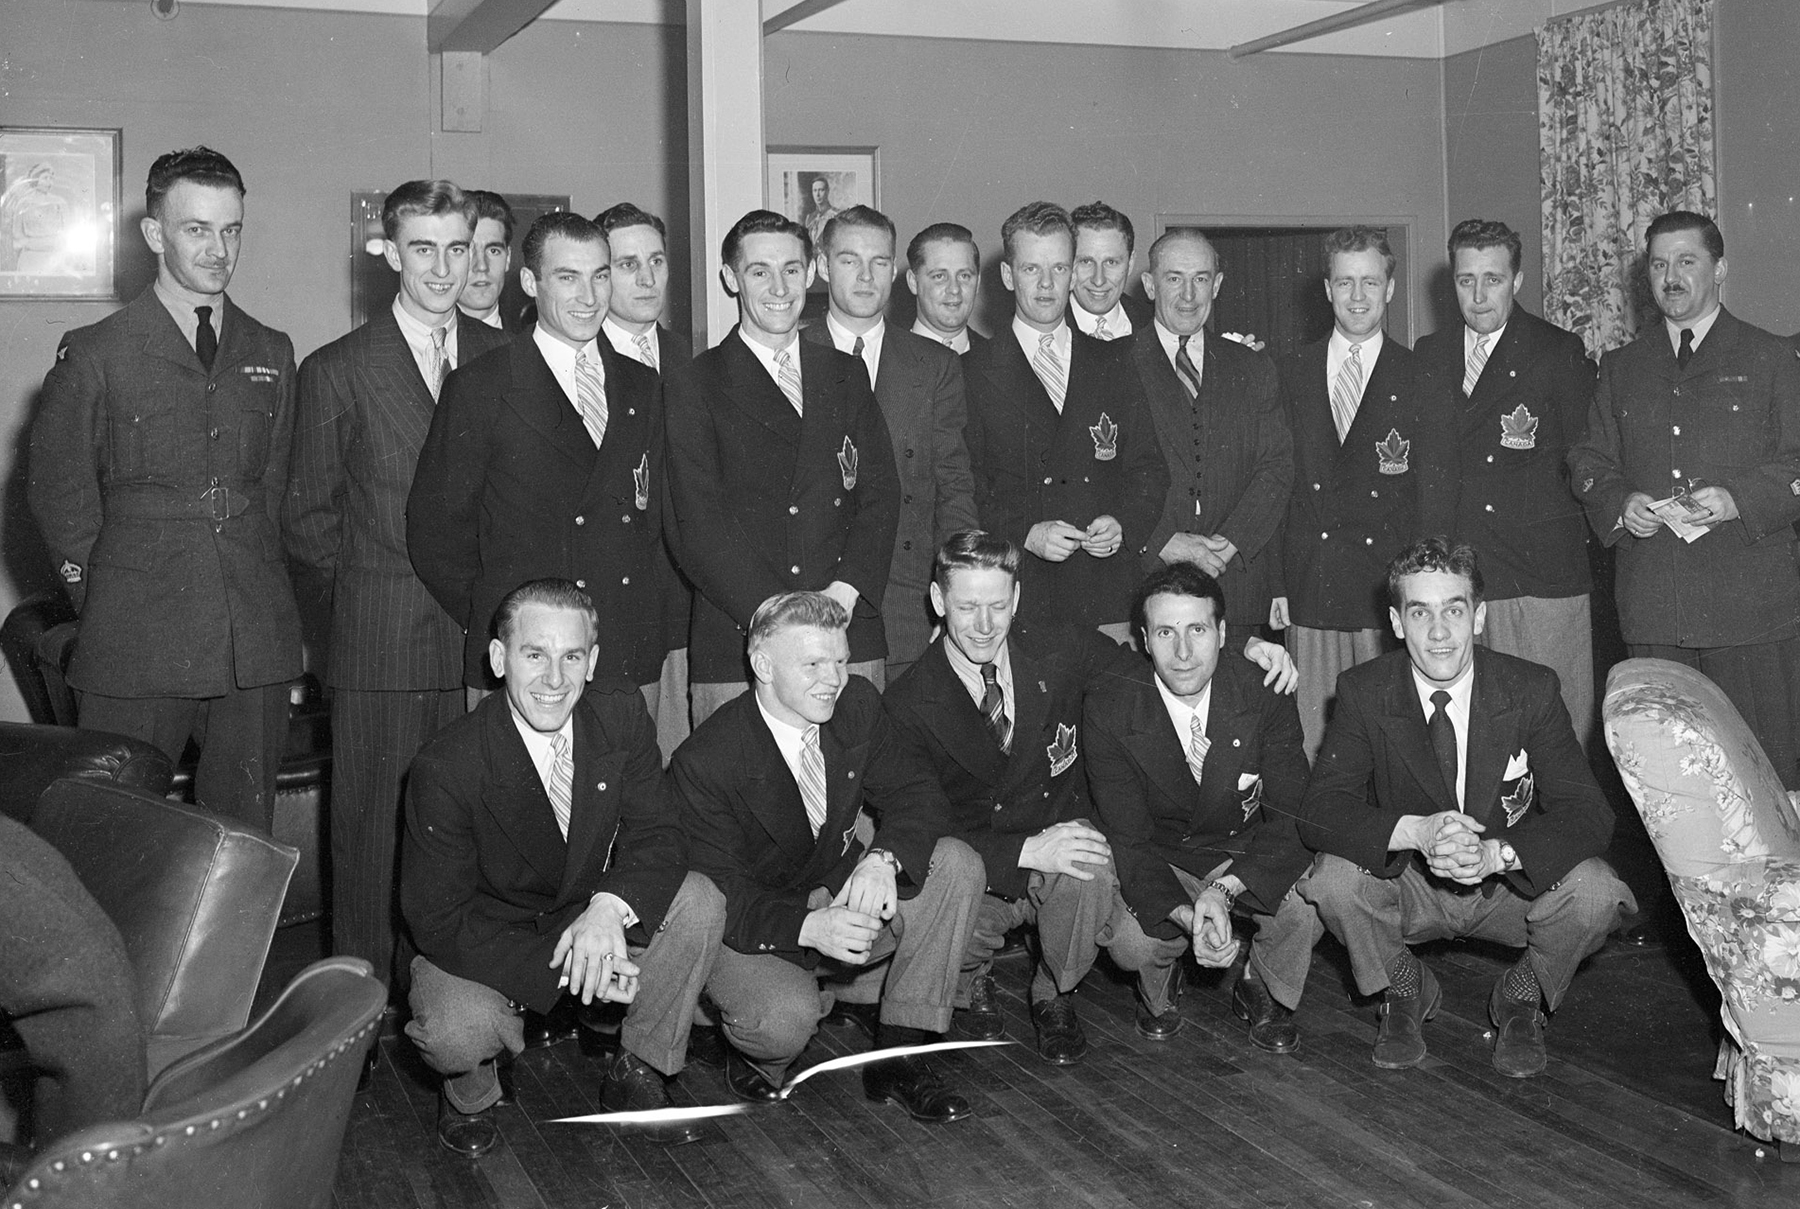 "The 1948 Olympic Champion RCAF Flyers gather for a photograph after receiving a tremendous ovation in the Sergeant's Mess at Ottawa's Beaver Barracks on April 8, 1948. Front row (left to right): Reg Schroeter, Orval Gravelle, Roy Forbes, Patsy Guzzo and Ted Hibberd. Back row (left to right): Warrant Officer Class 2 W.H. Fader, vice-president of the mess, Murray Dowey, Pete Lietchnitz, Hubert Brooks, Frank Dunster, Ab Renaud, George Mara, Louis LeCompte, Ross King, Sandy Watson, George ""Buck"" Boucher, Frank Boucher, Corporal George McFaul and Warrant Officer Class 2 Colin Campbell. Absent from the photo are André Laperrière and Wally Halder. PHOTO: DND Archves, PL-38853"